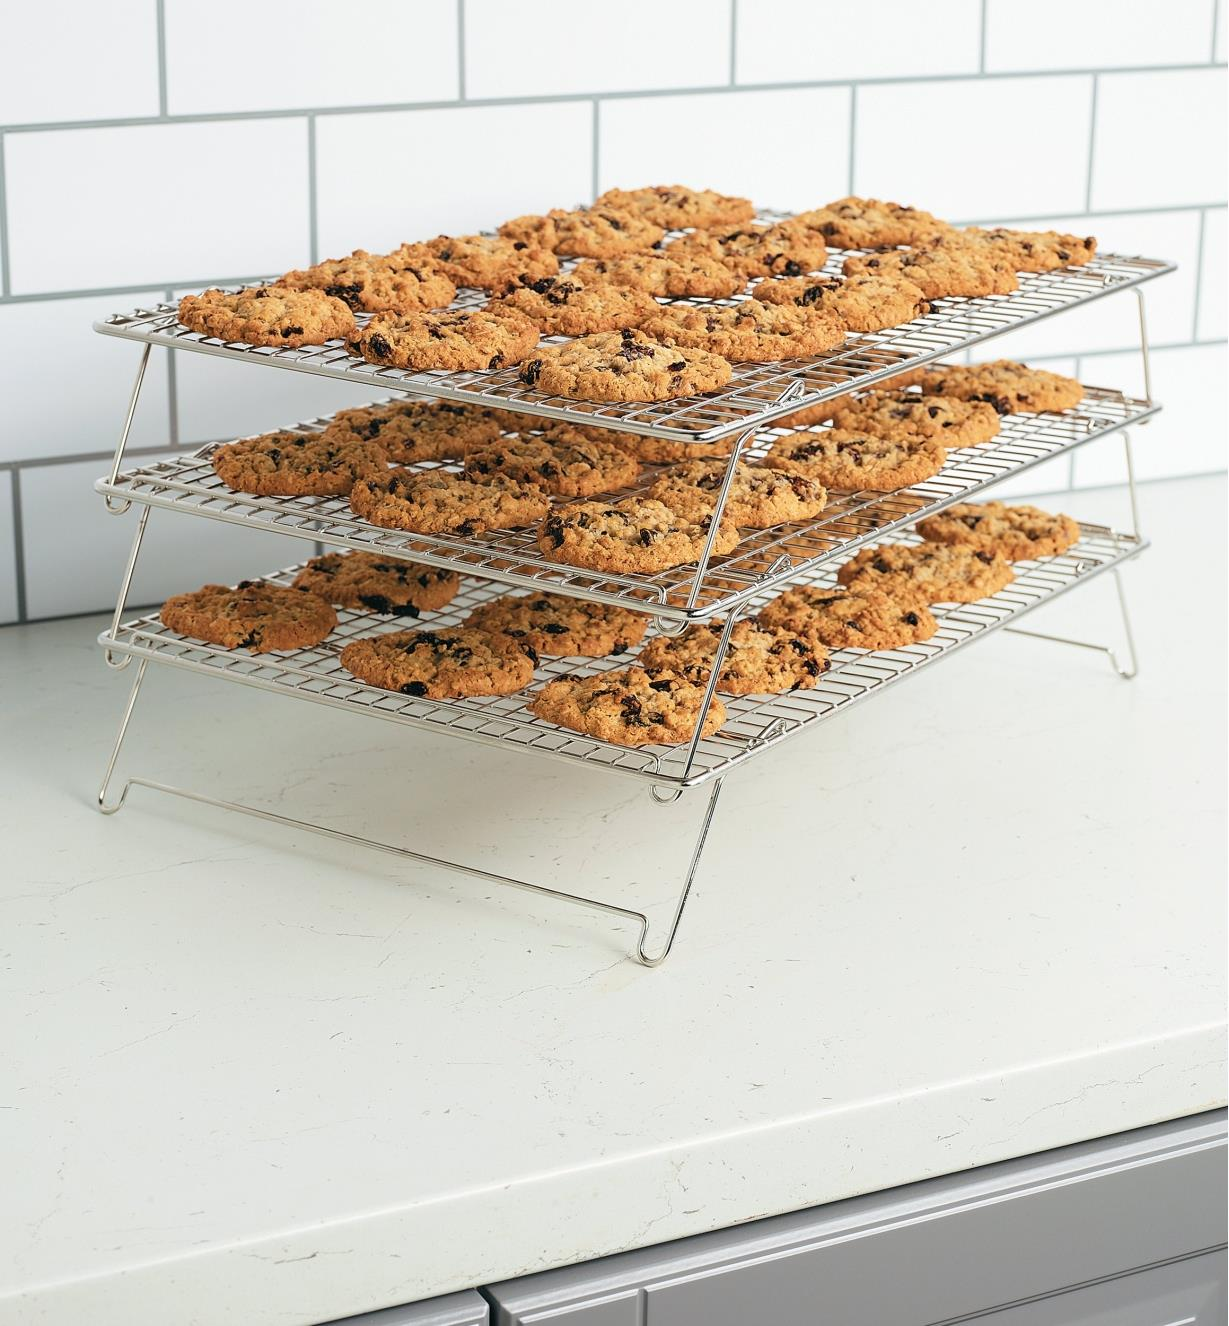 Cooling racks stacked in three tiers with each rack covered in cookies